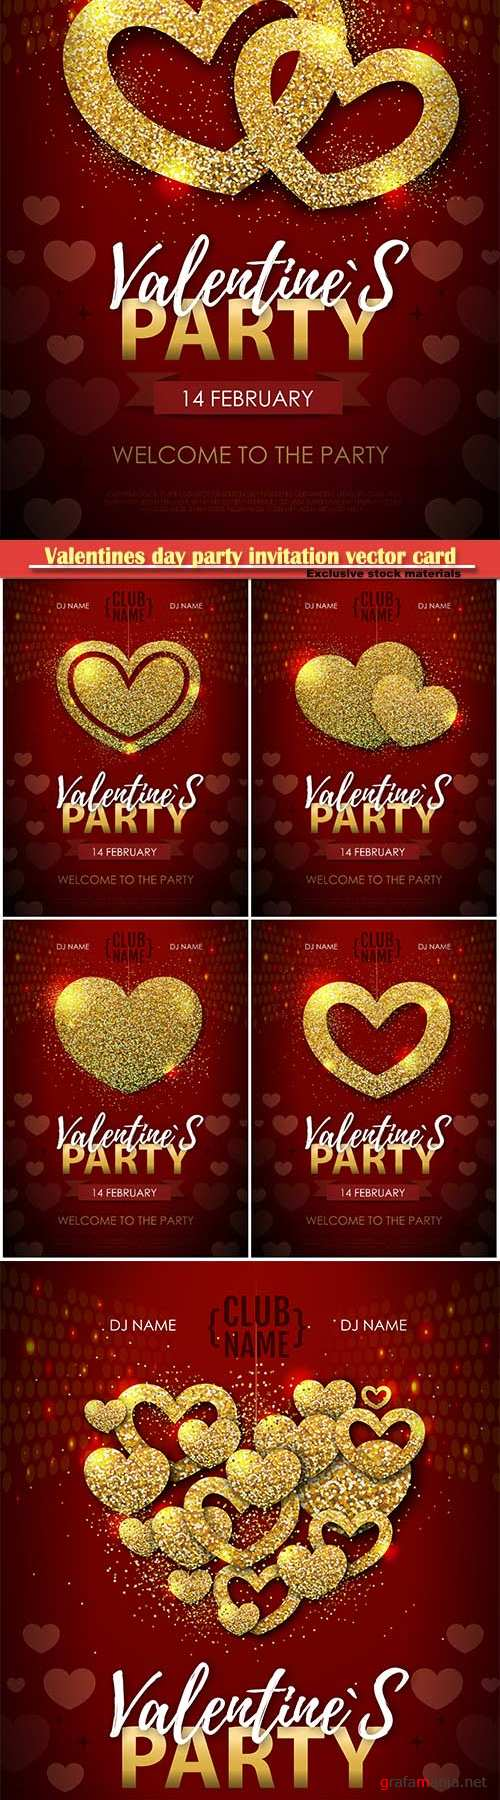 Valentines day party invitation vector card # 13